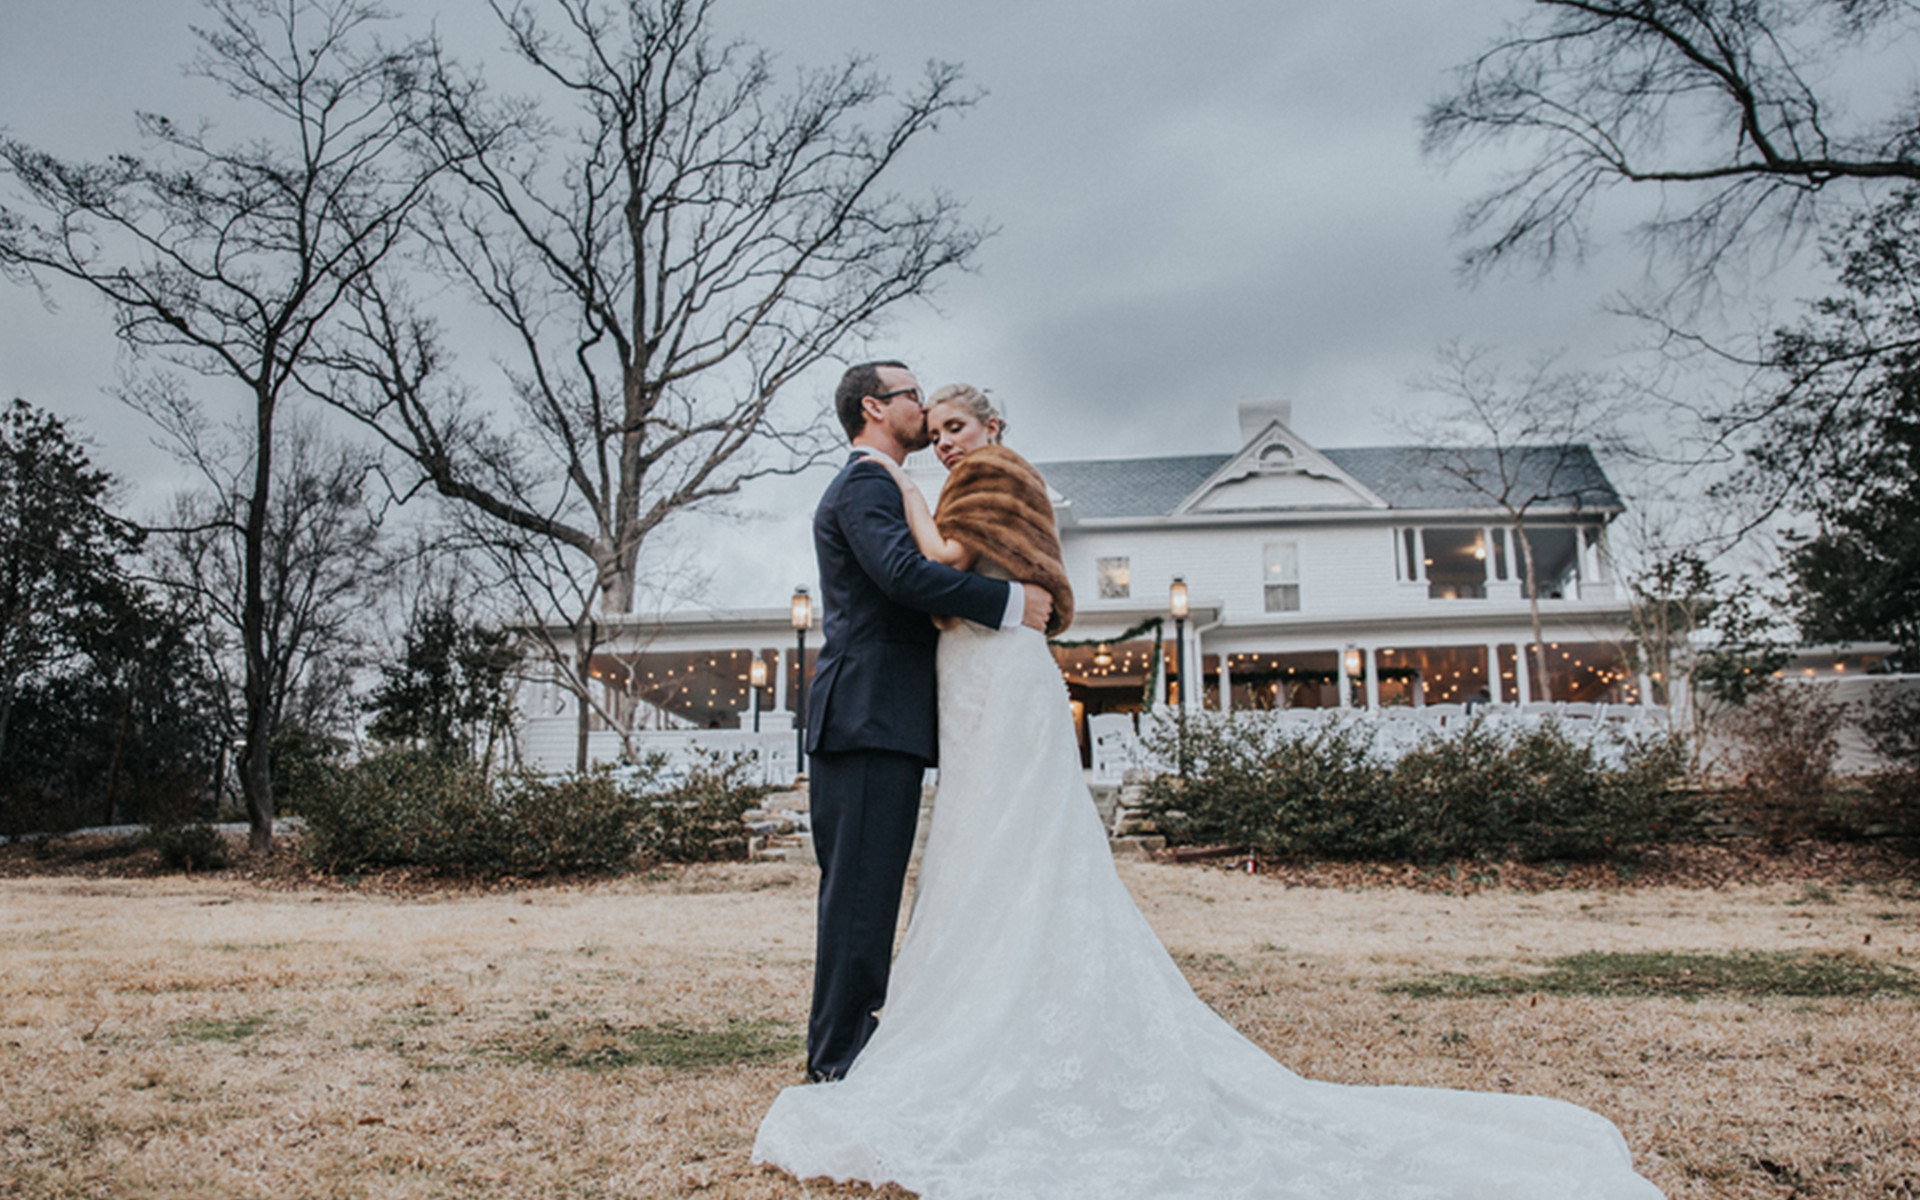 BBQ, Cocktails, and Vintage Inspired Winter Wedding